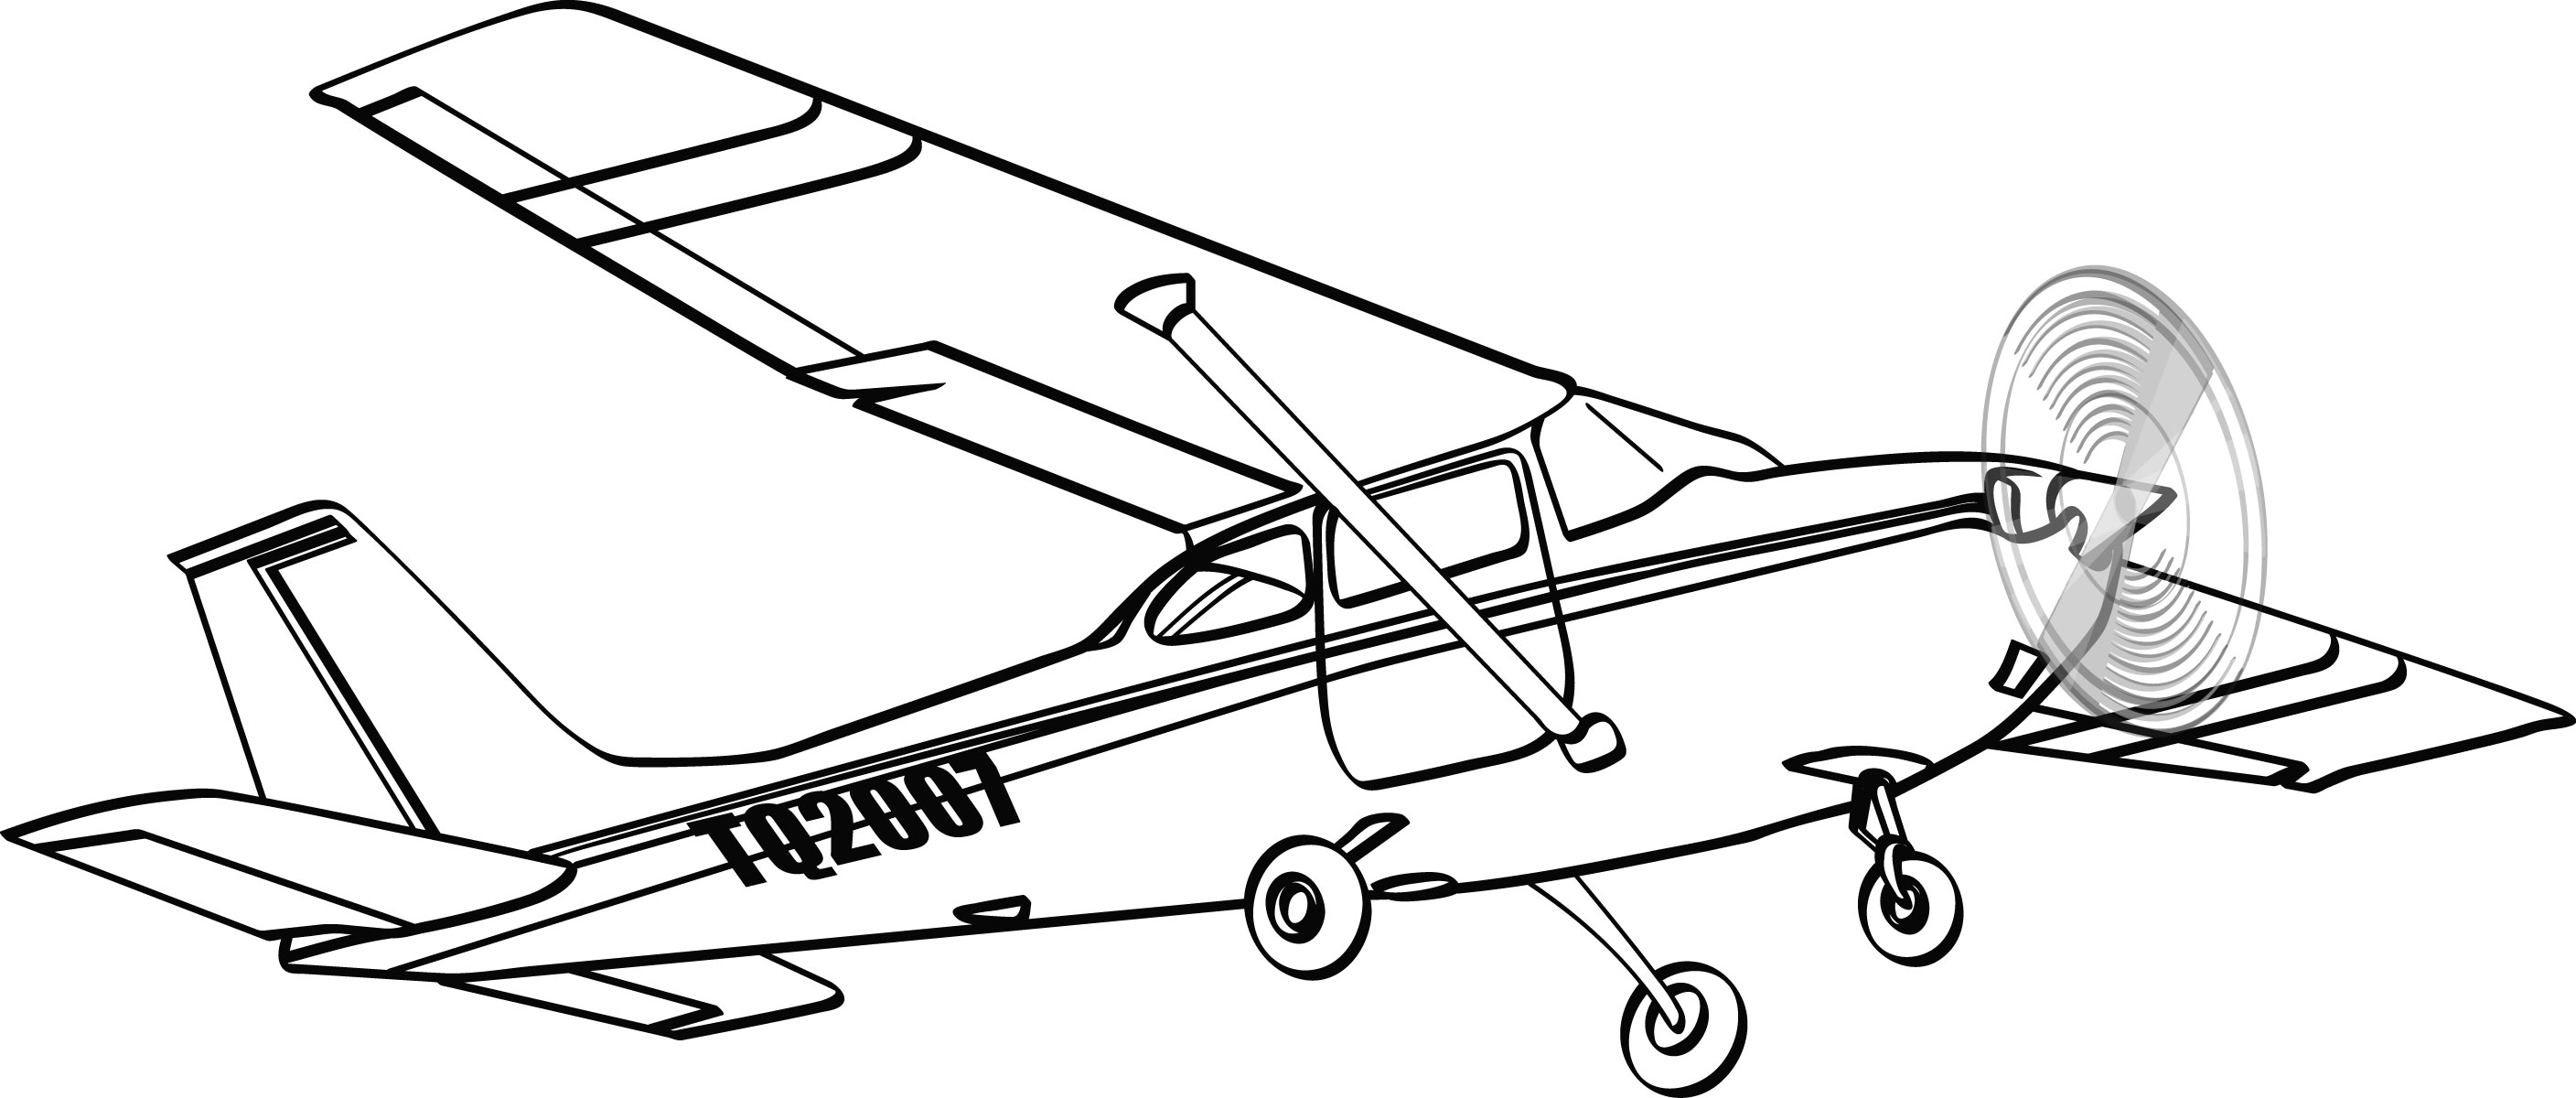 The best free Cessna drawing images. Download from 74 free